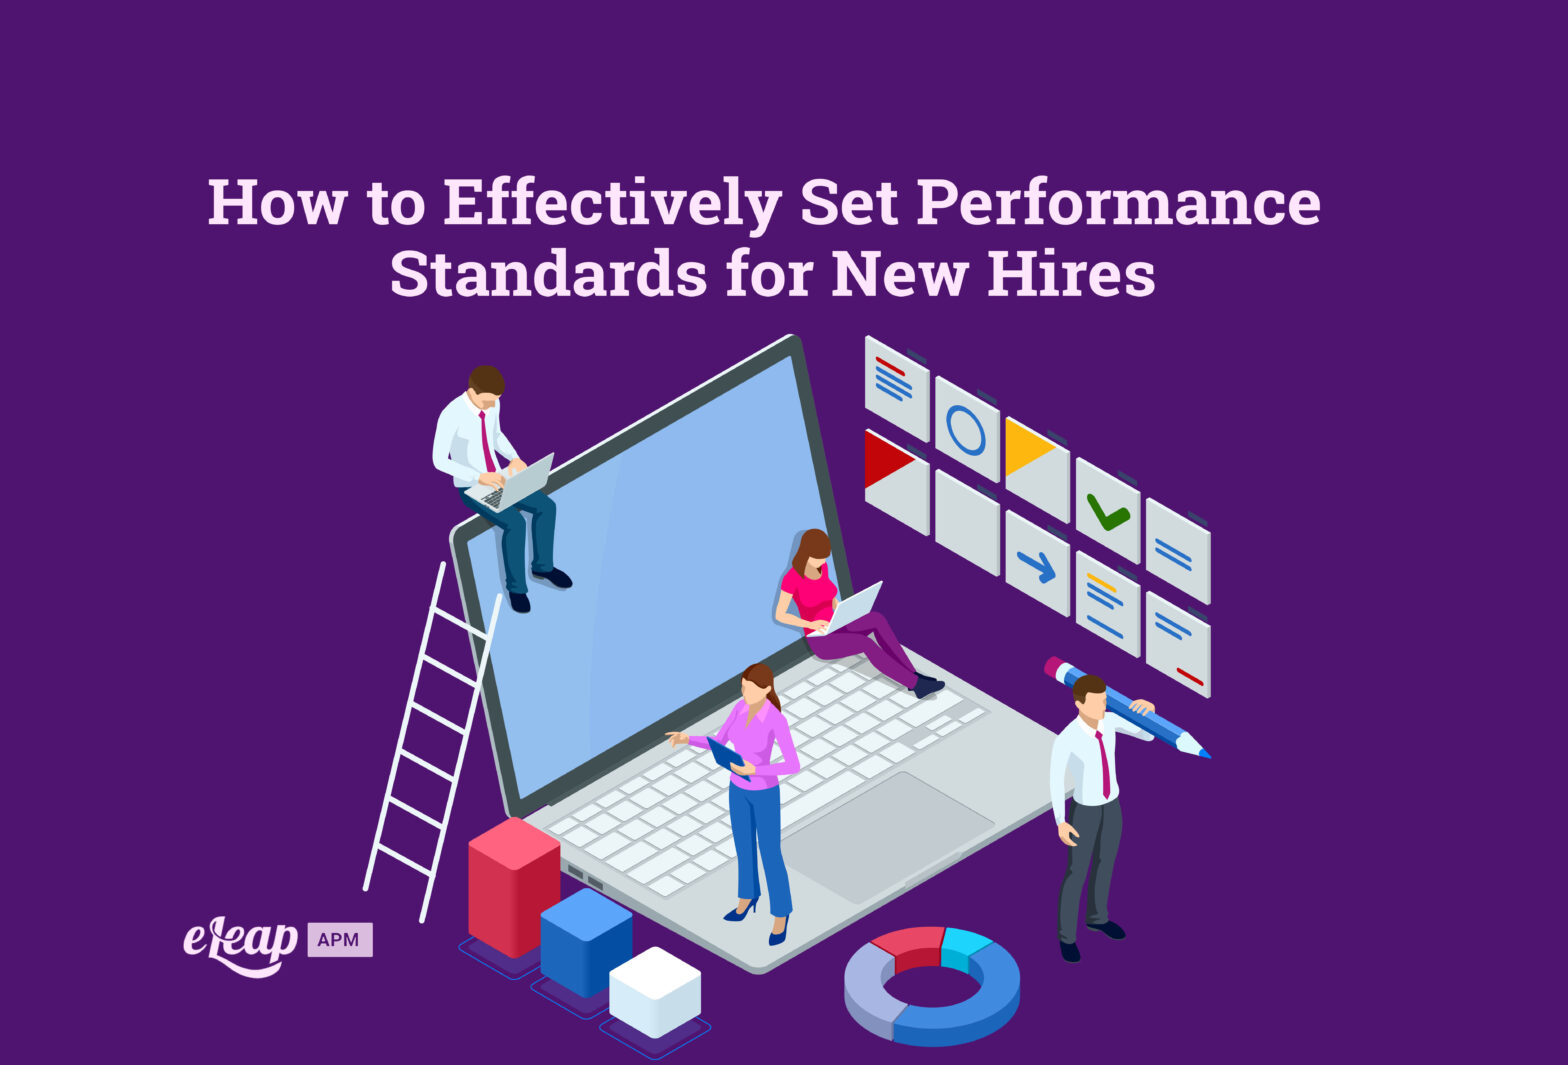 How to Effectively Set Performance Standards for New Hires